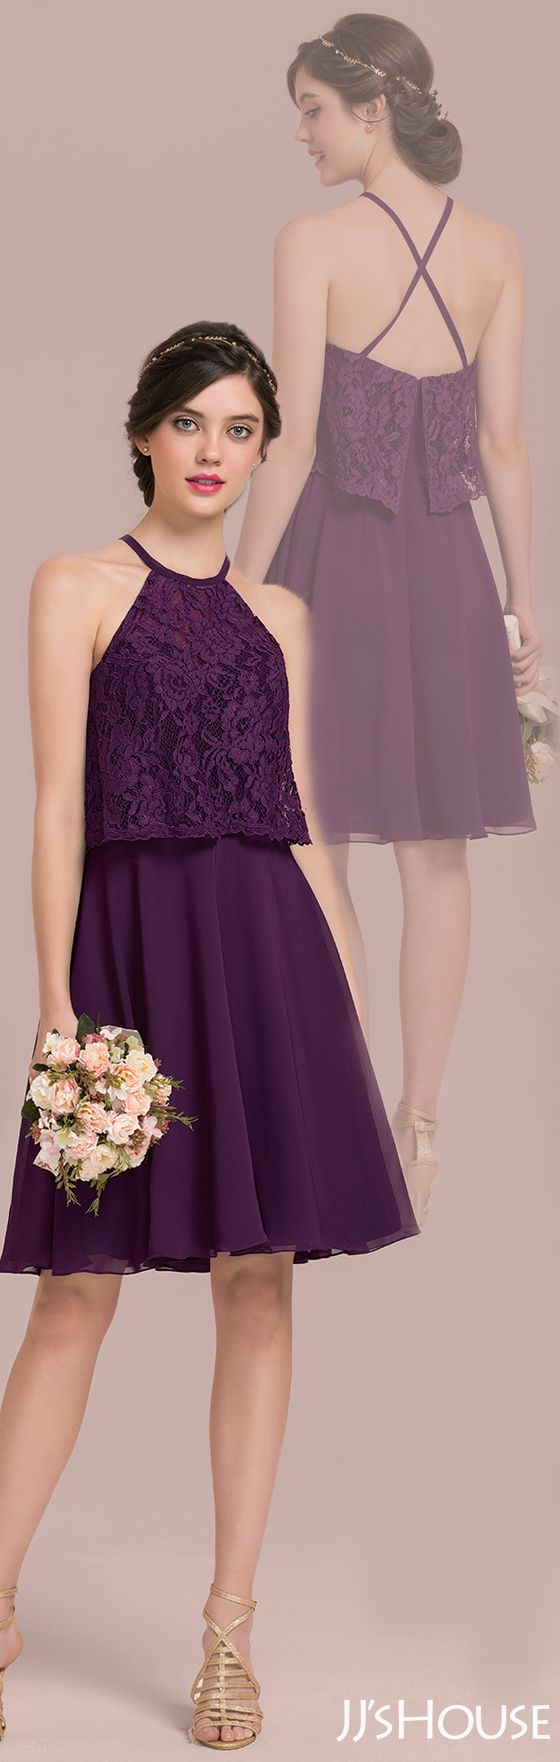 This bridesmaid dress is a little cute and a little sexy! #JJsHouse #Bridesmaid